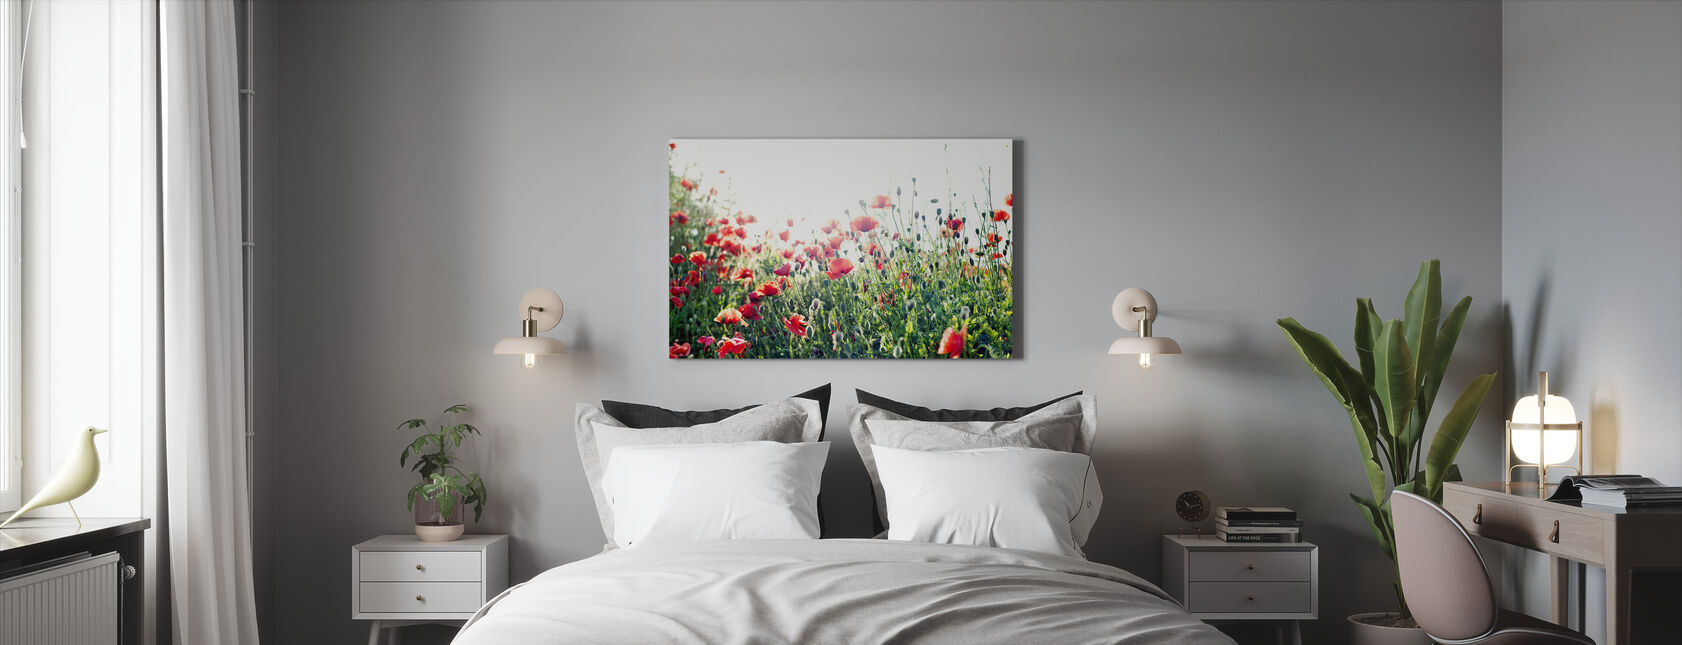 Gotland Poppies - Canvas print - Bedroom